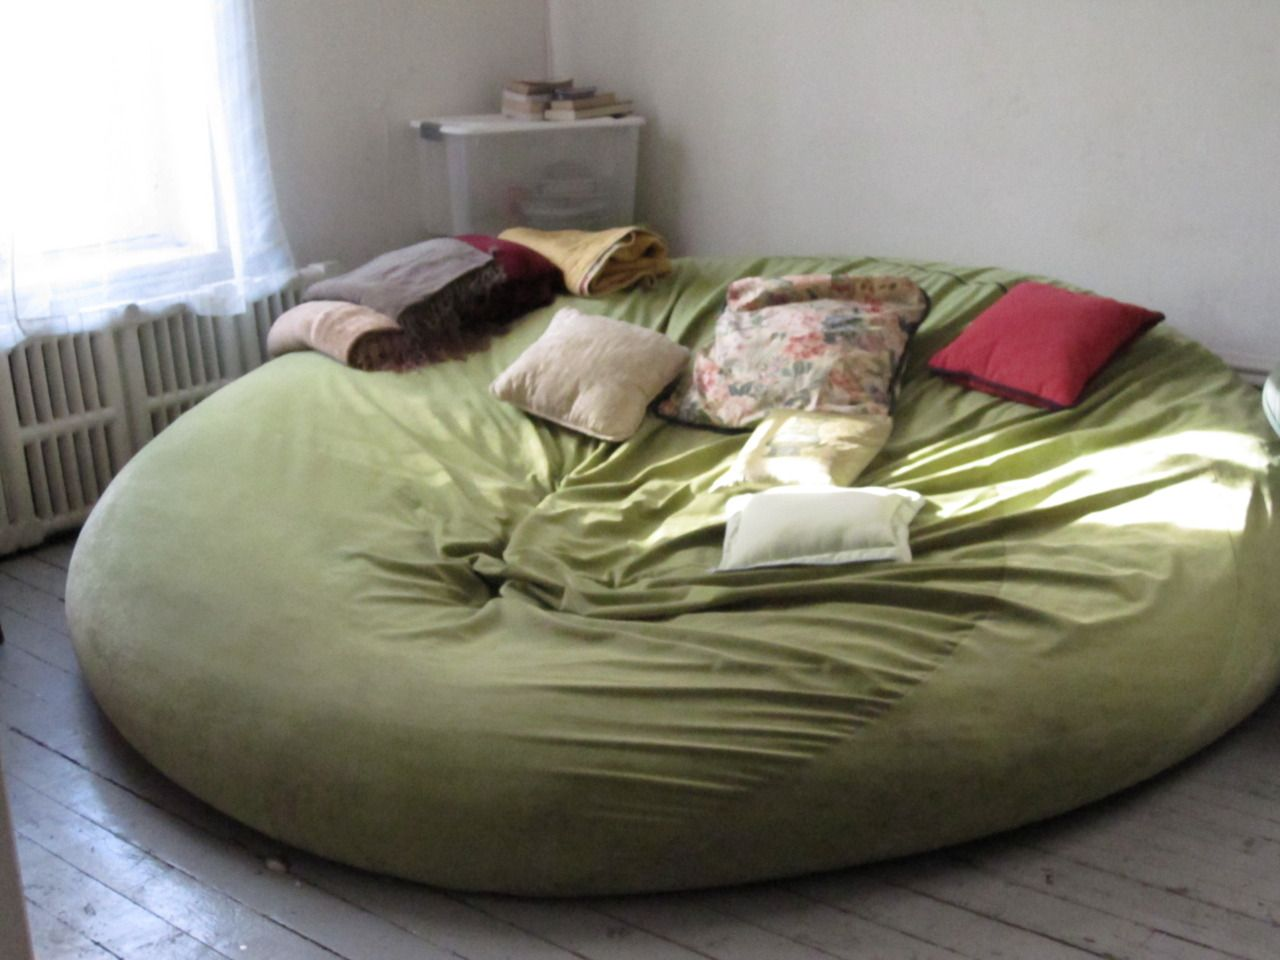 78500a515df Funny Bean Bag Chairs   Biggest bean bag chair bed I ve ever seen in my  life. I want this!